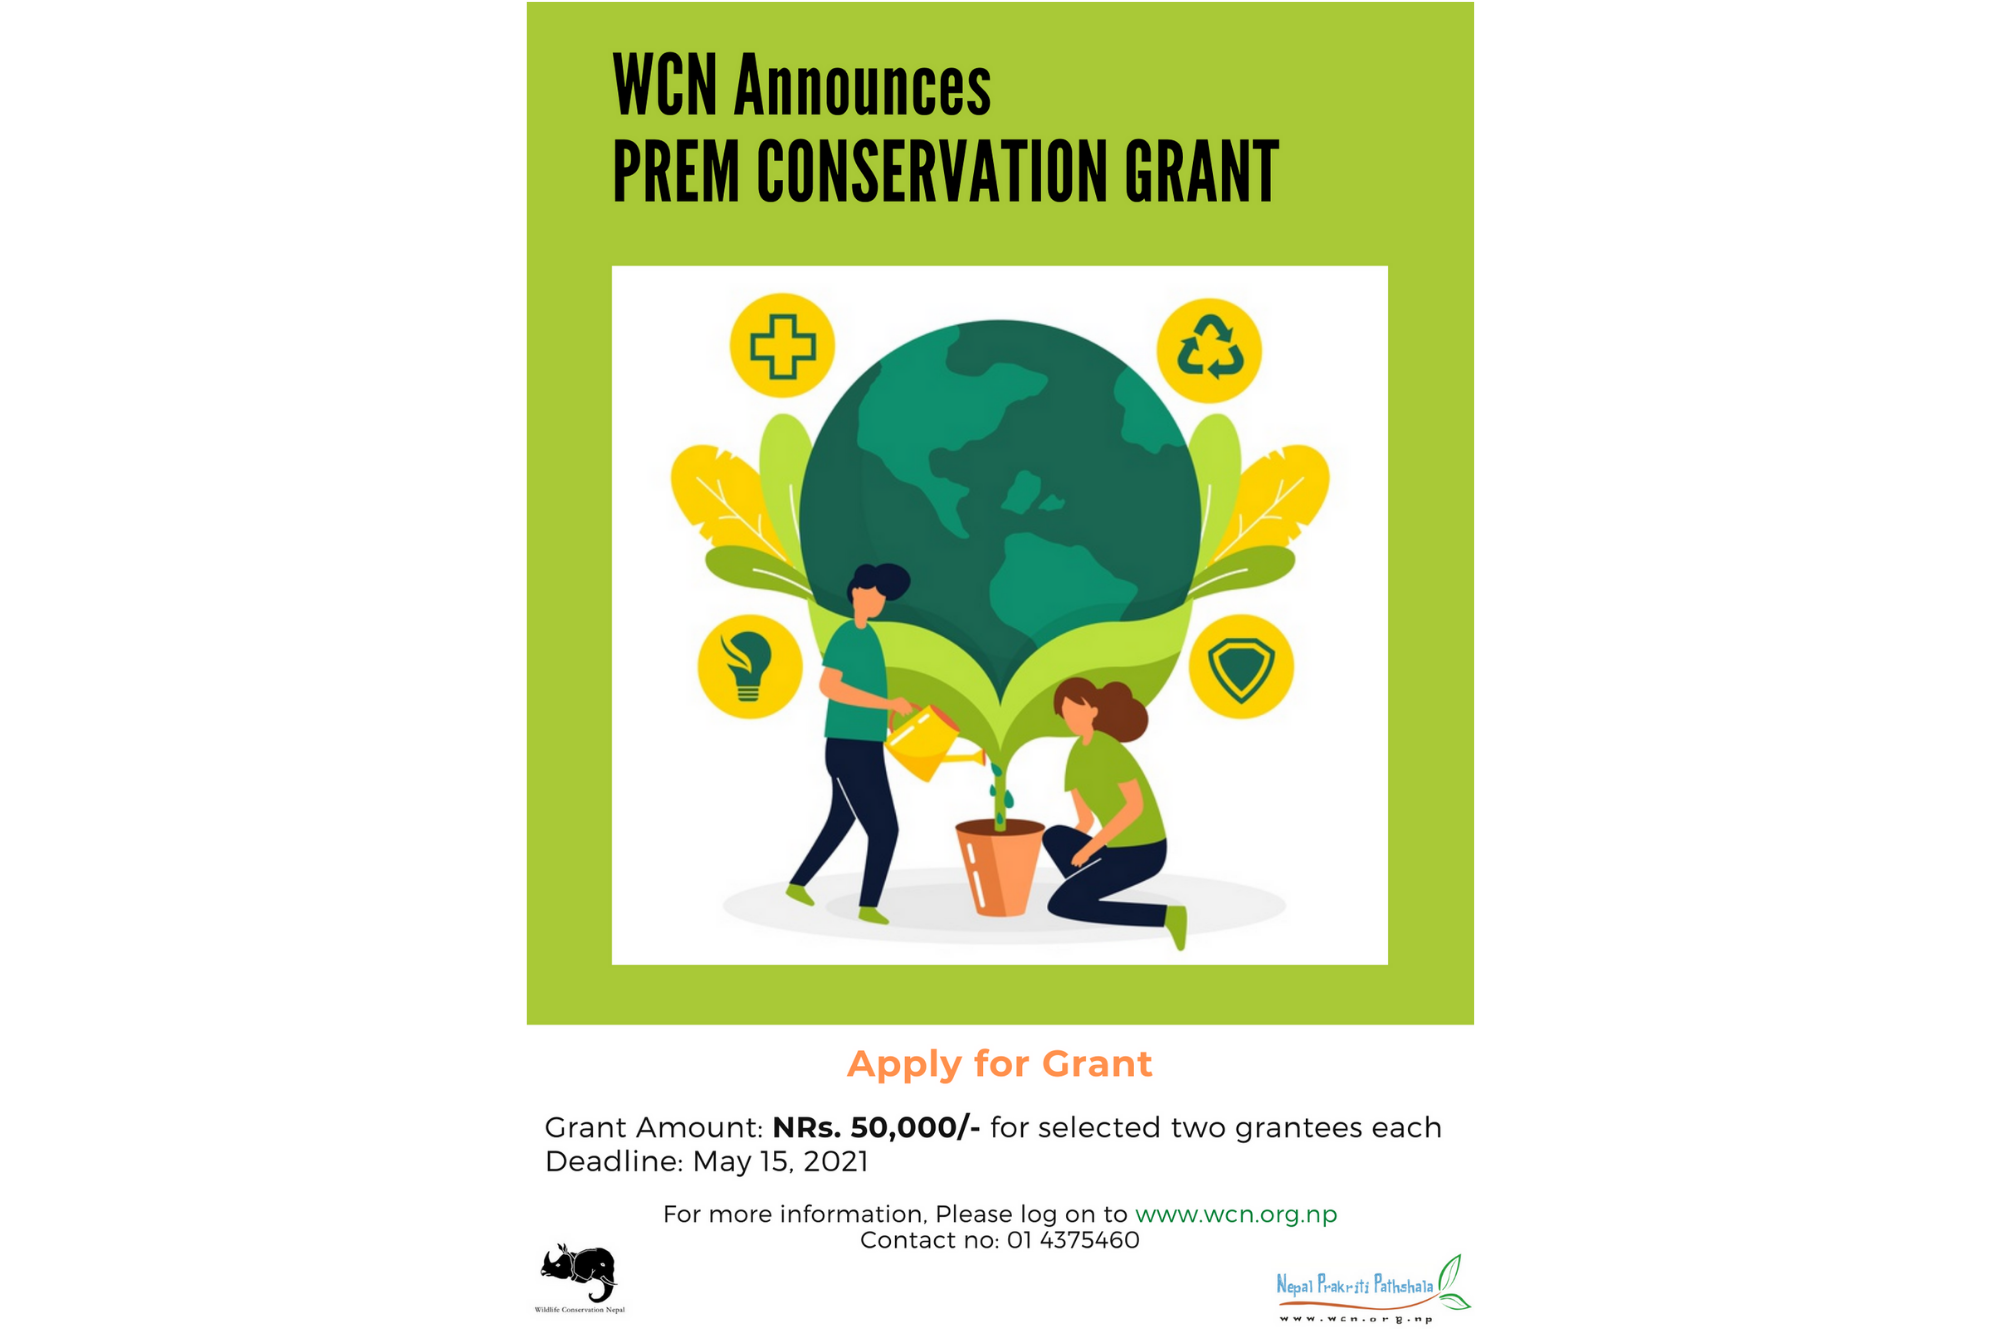 WCN Announces Prem Conservation Grant